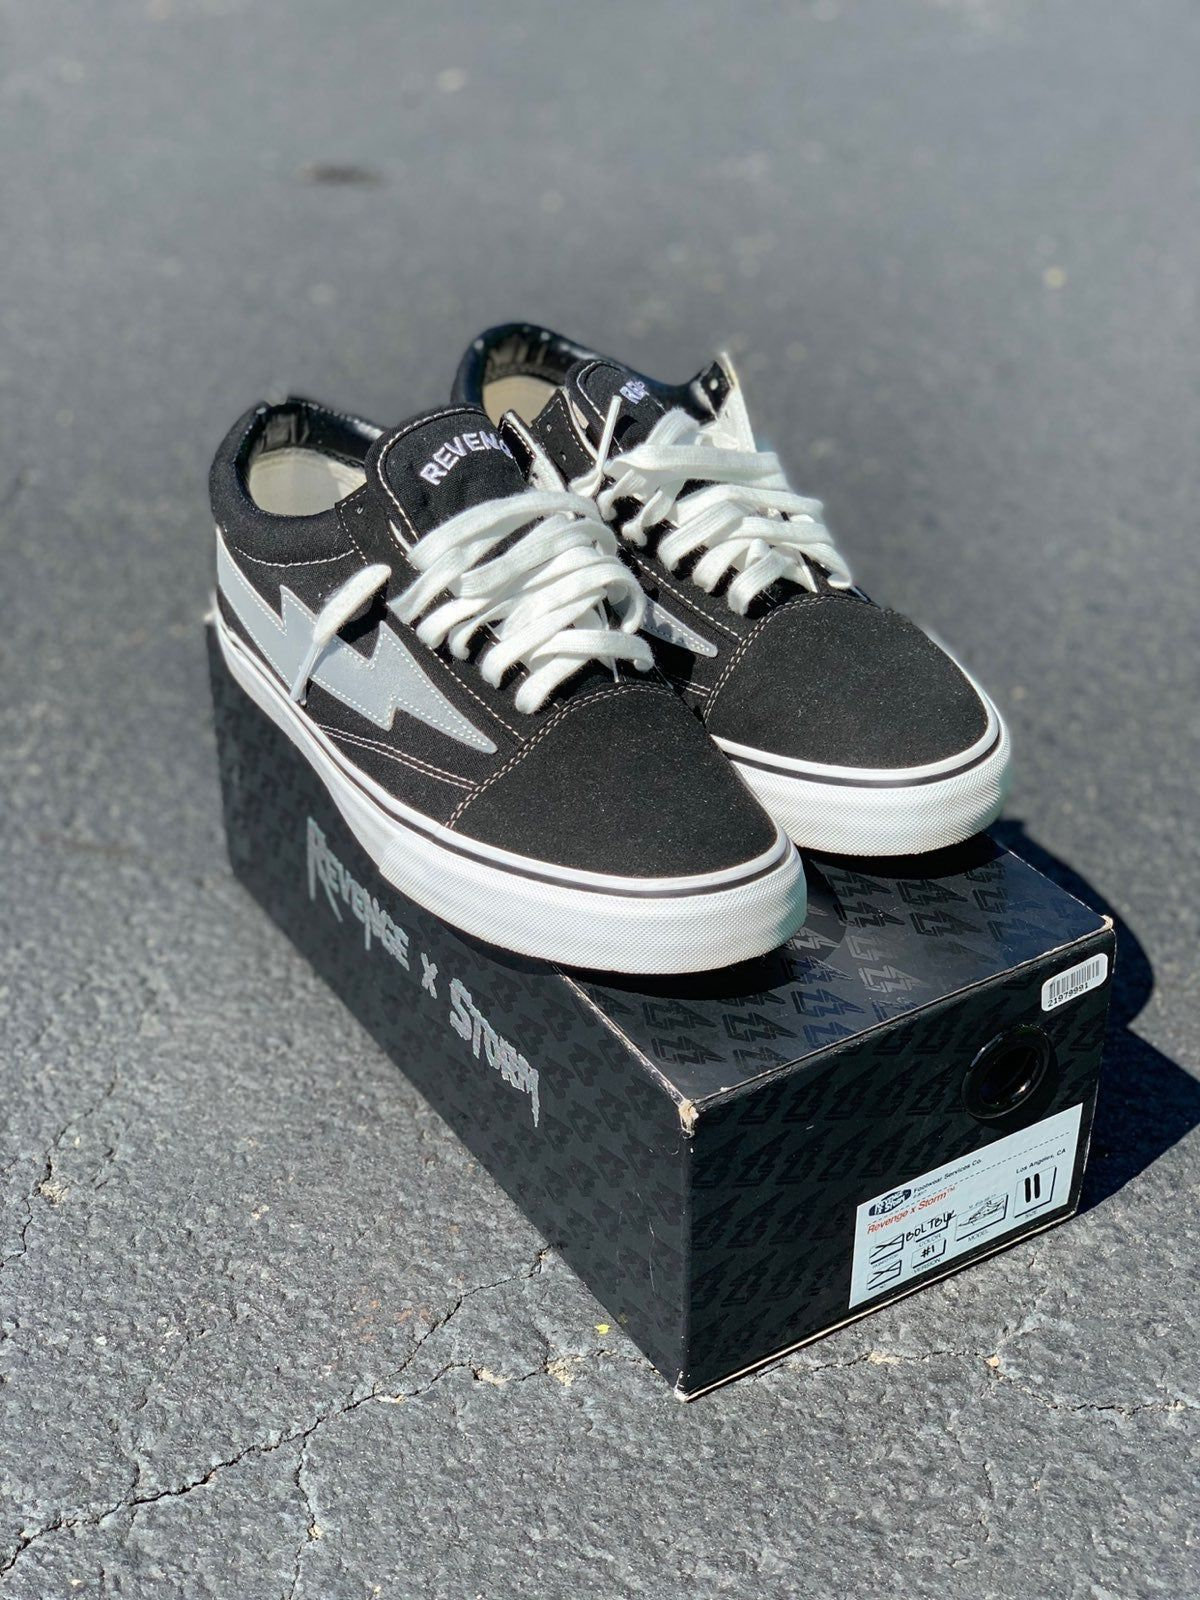 Revenge X Storm 3m Size 11 100 Authentic Og All Purchased From Goat Worn Once Price Is Firm Revenge Vans Storm